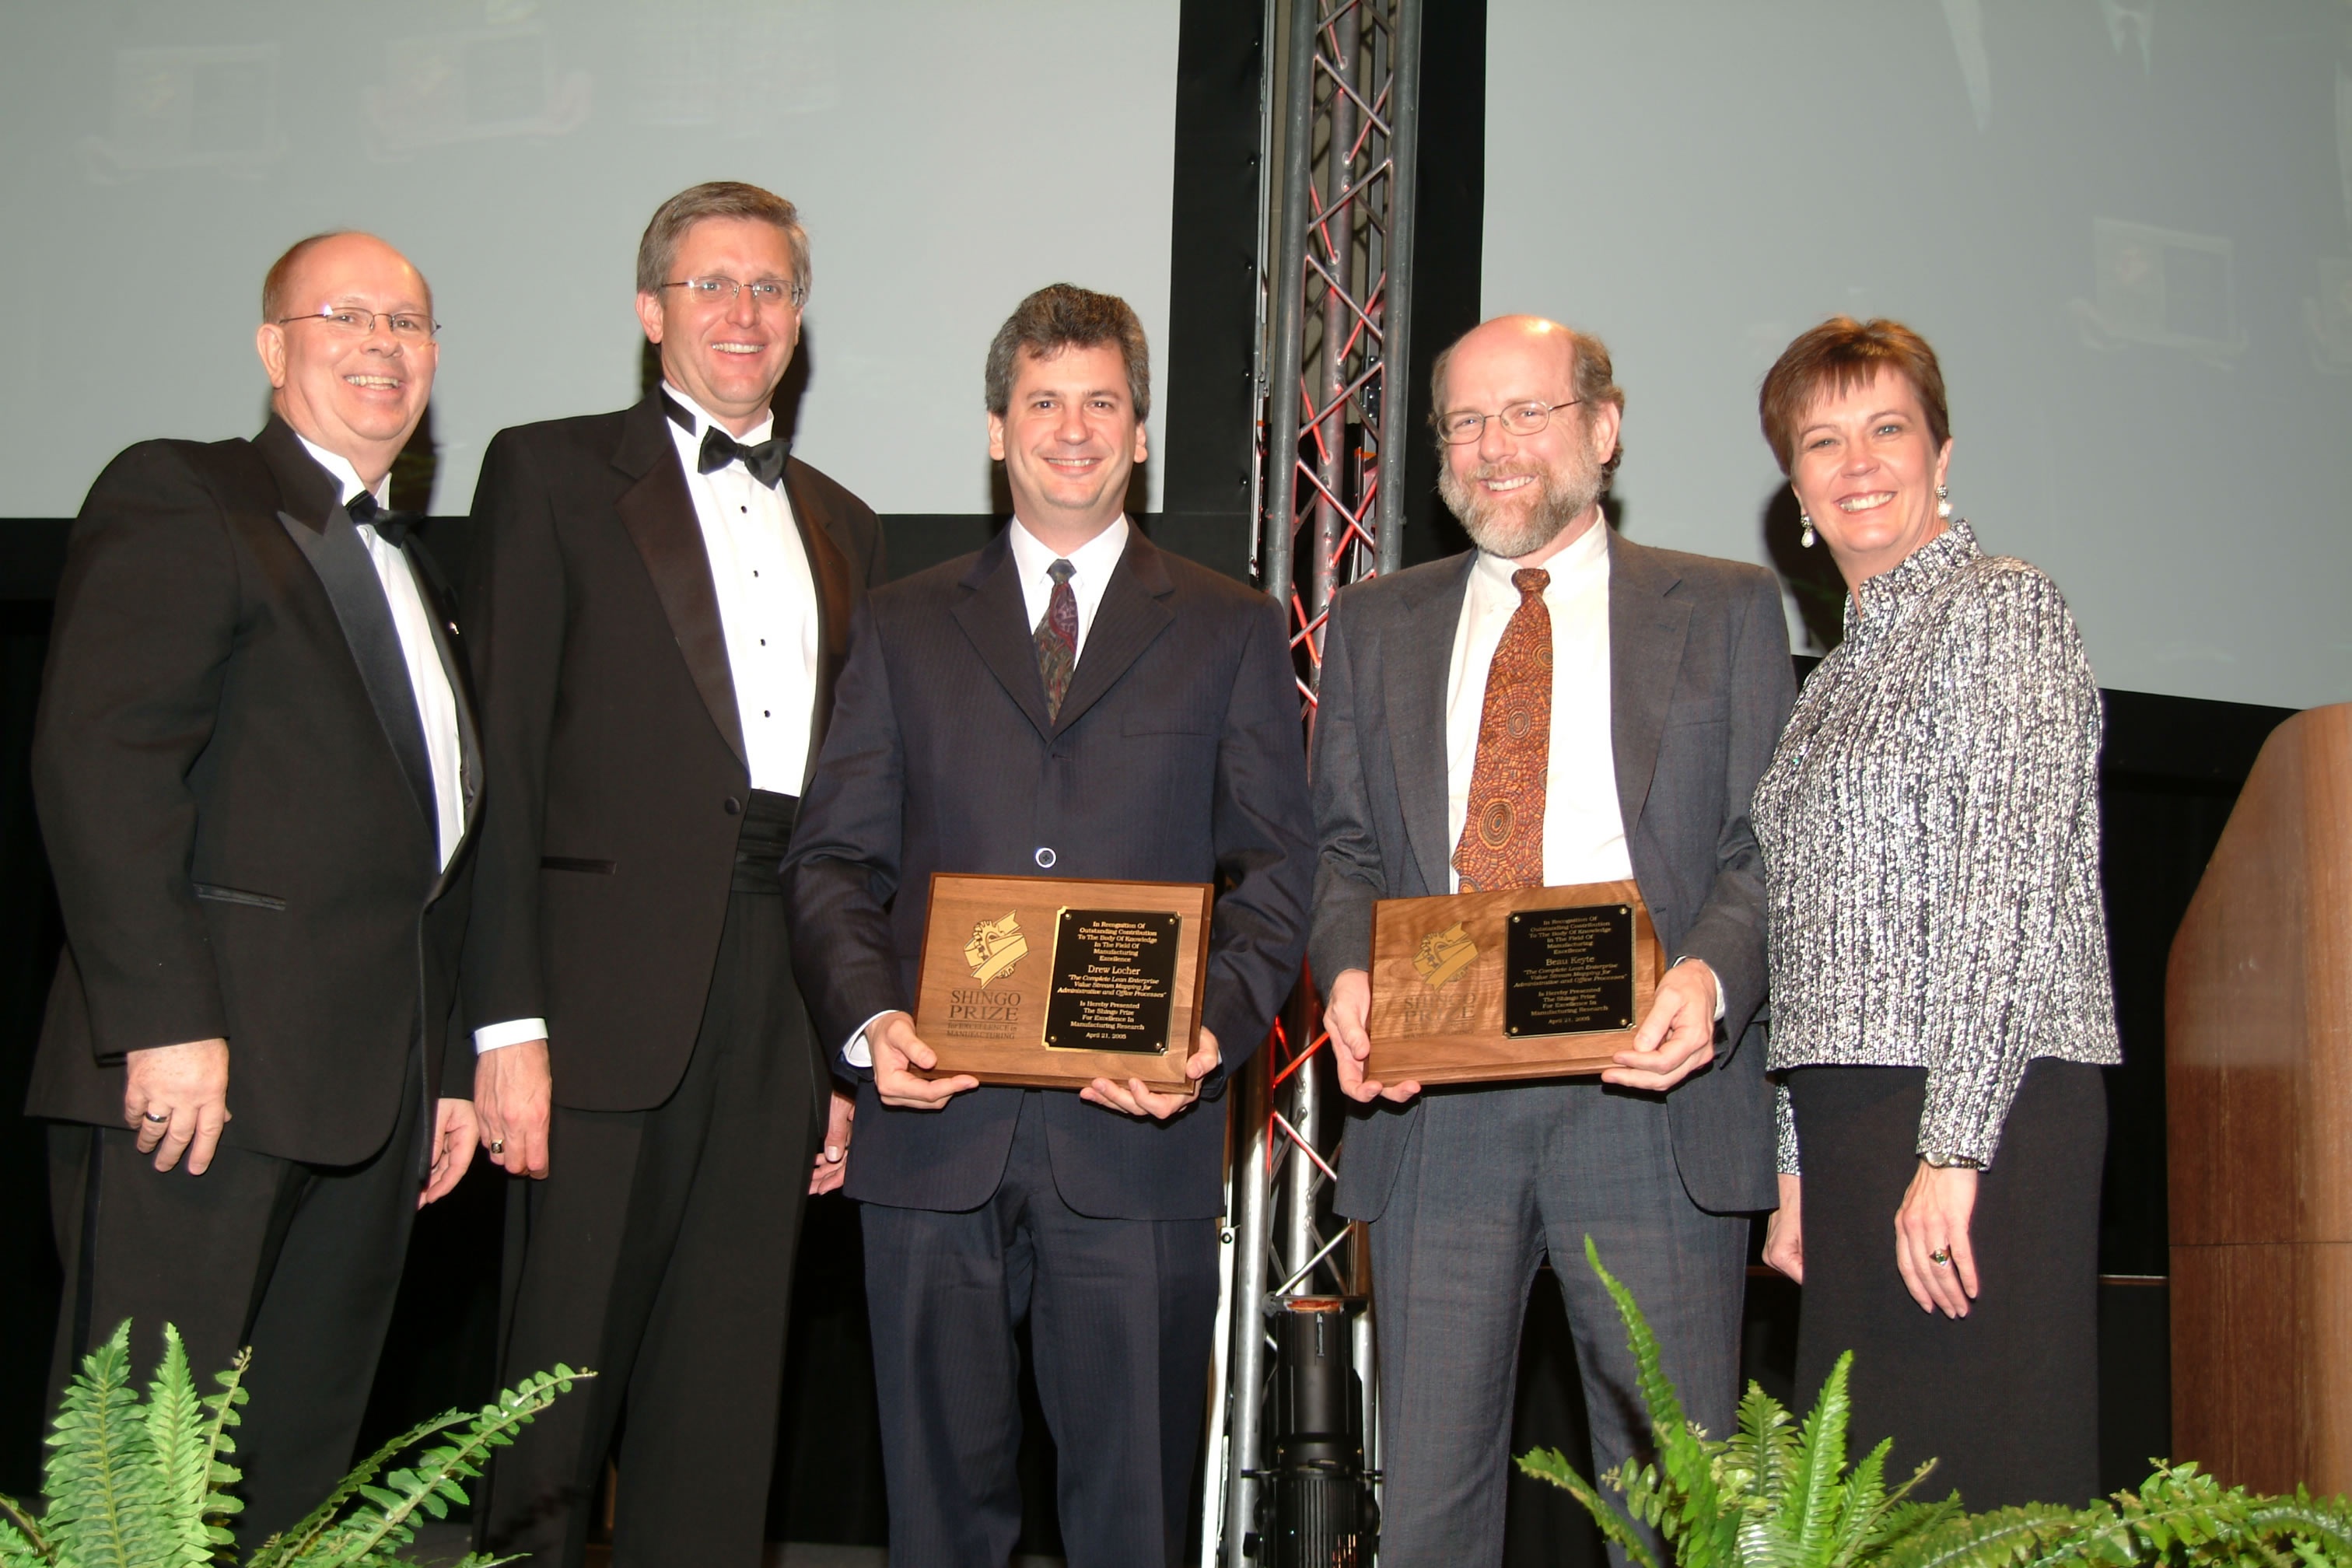 """Receiving Shingo Prize for """"The Complete Lean Enterprise"""" with co-author Beau Keyte. Former Shingo Executive Director Ross Robson on left."""